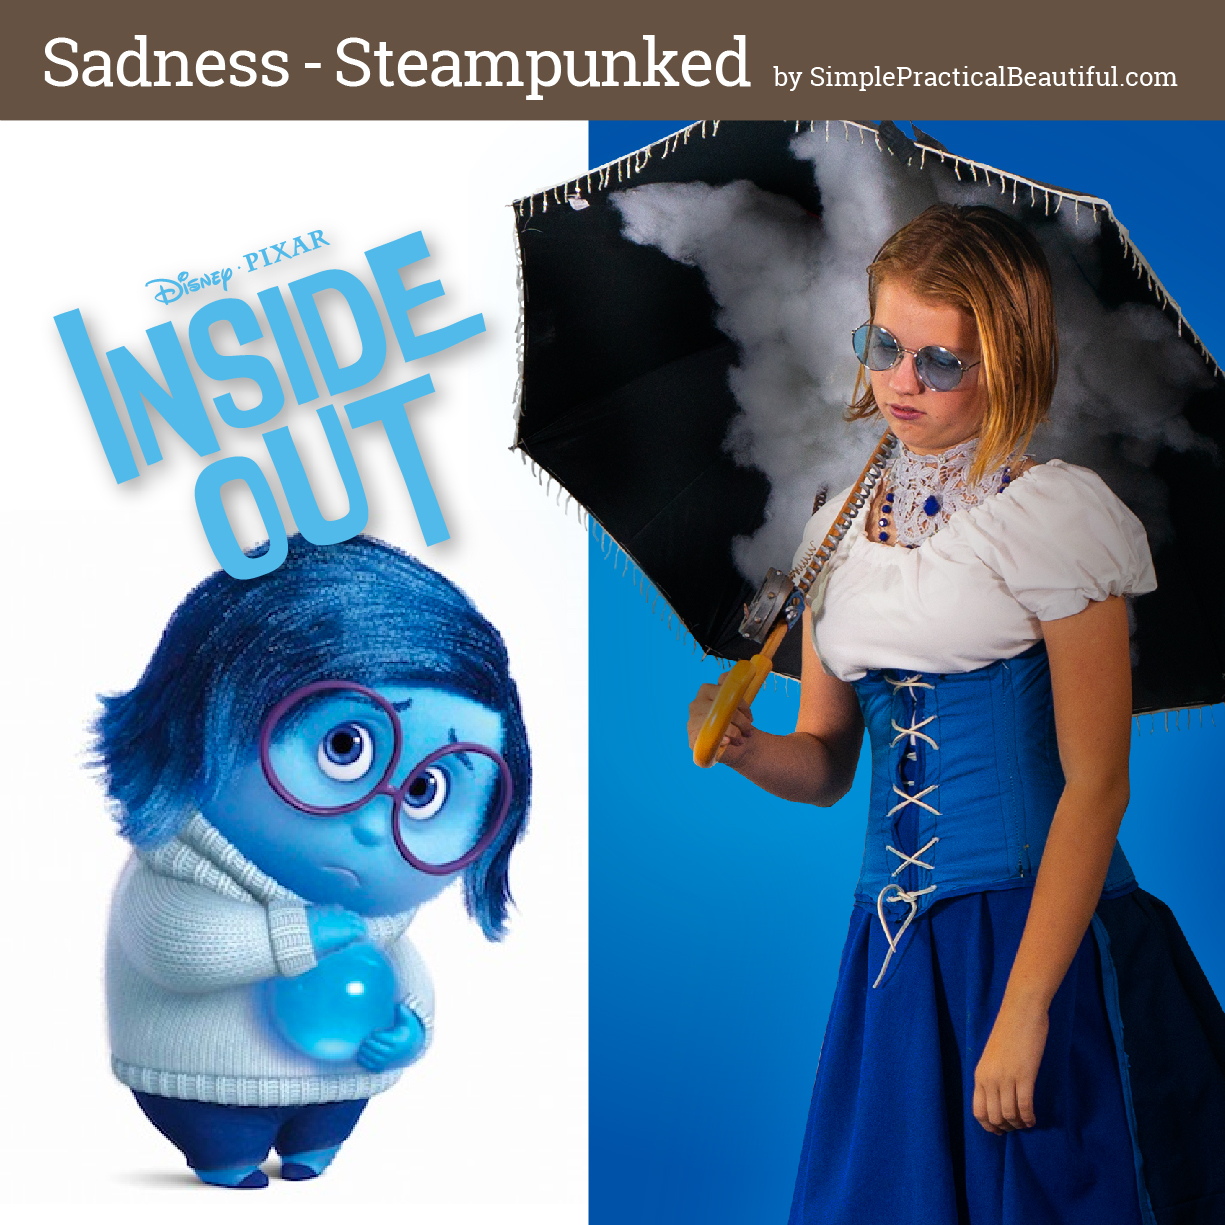 Sadness from Disney Pixar's Inside Out inspires a steampunk costume for cosplay